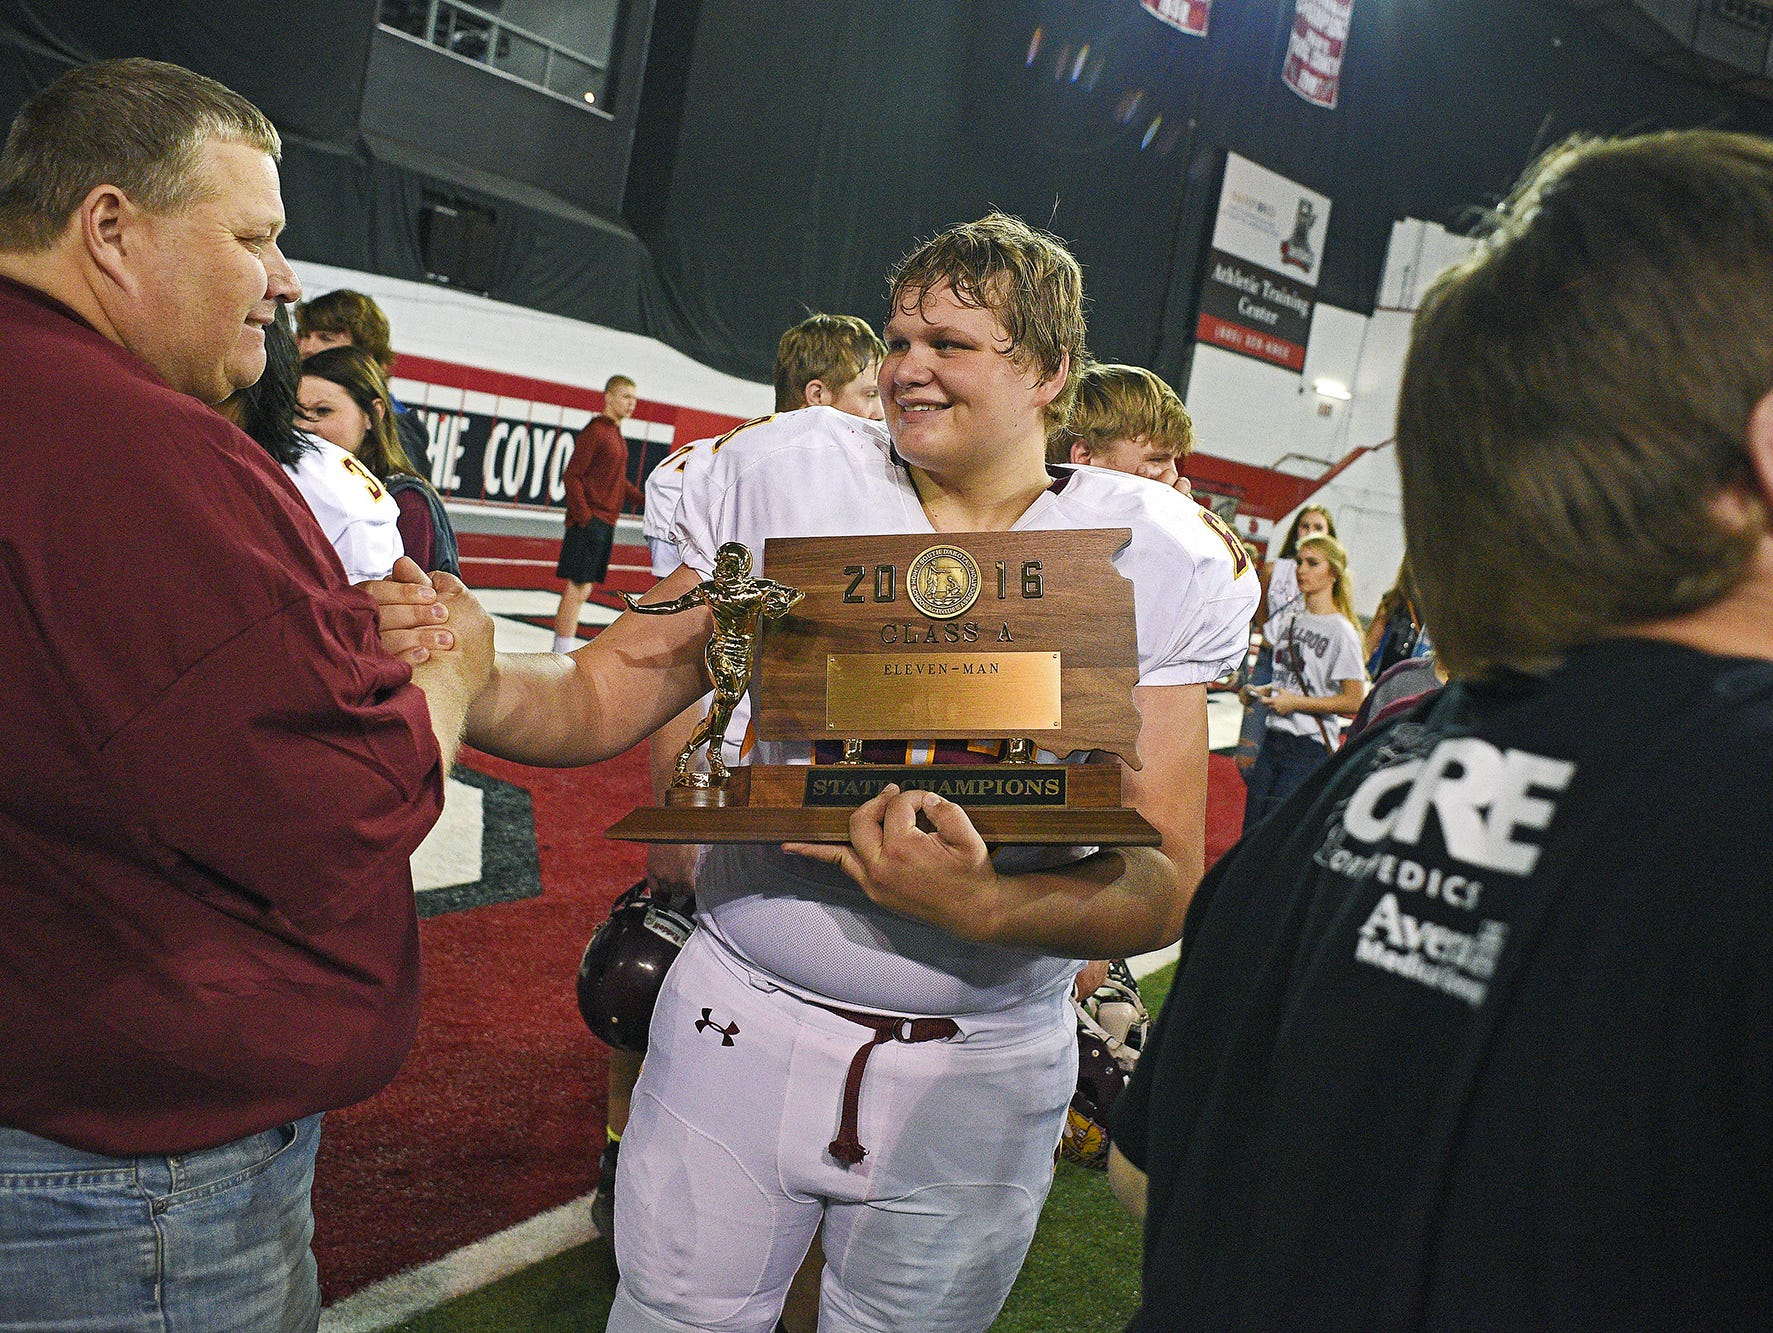 Madison's Luke Palmquist (69) holds their trophy while celebrating their 39-0 win over Tea Area with their fans and families after the 2016 South Dakota State Class 11A Football Championship game Saturday, Nov. 12, 2016, at the DakotaDome on the University of South Dakota campus in Vermillion, S.D.